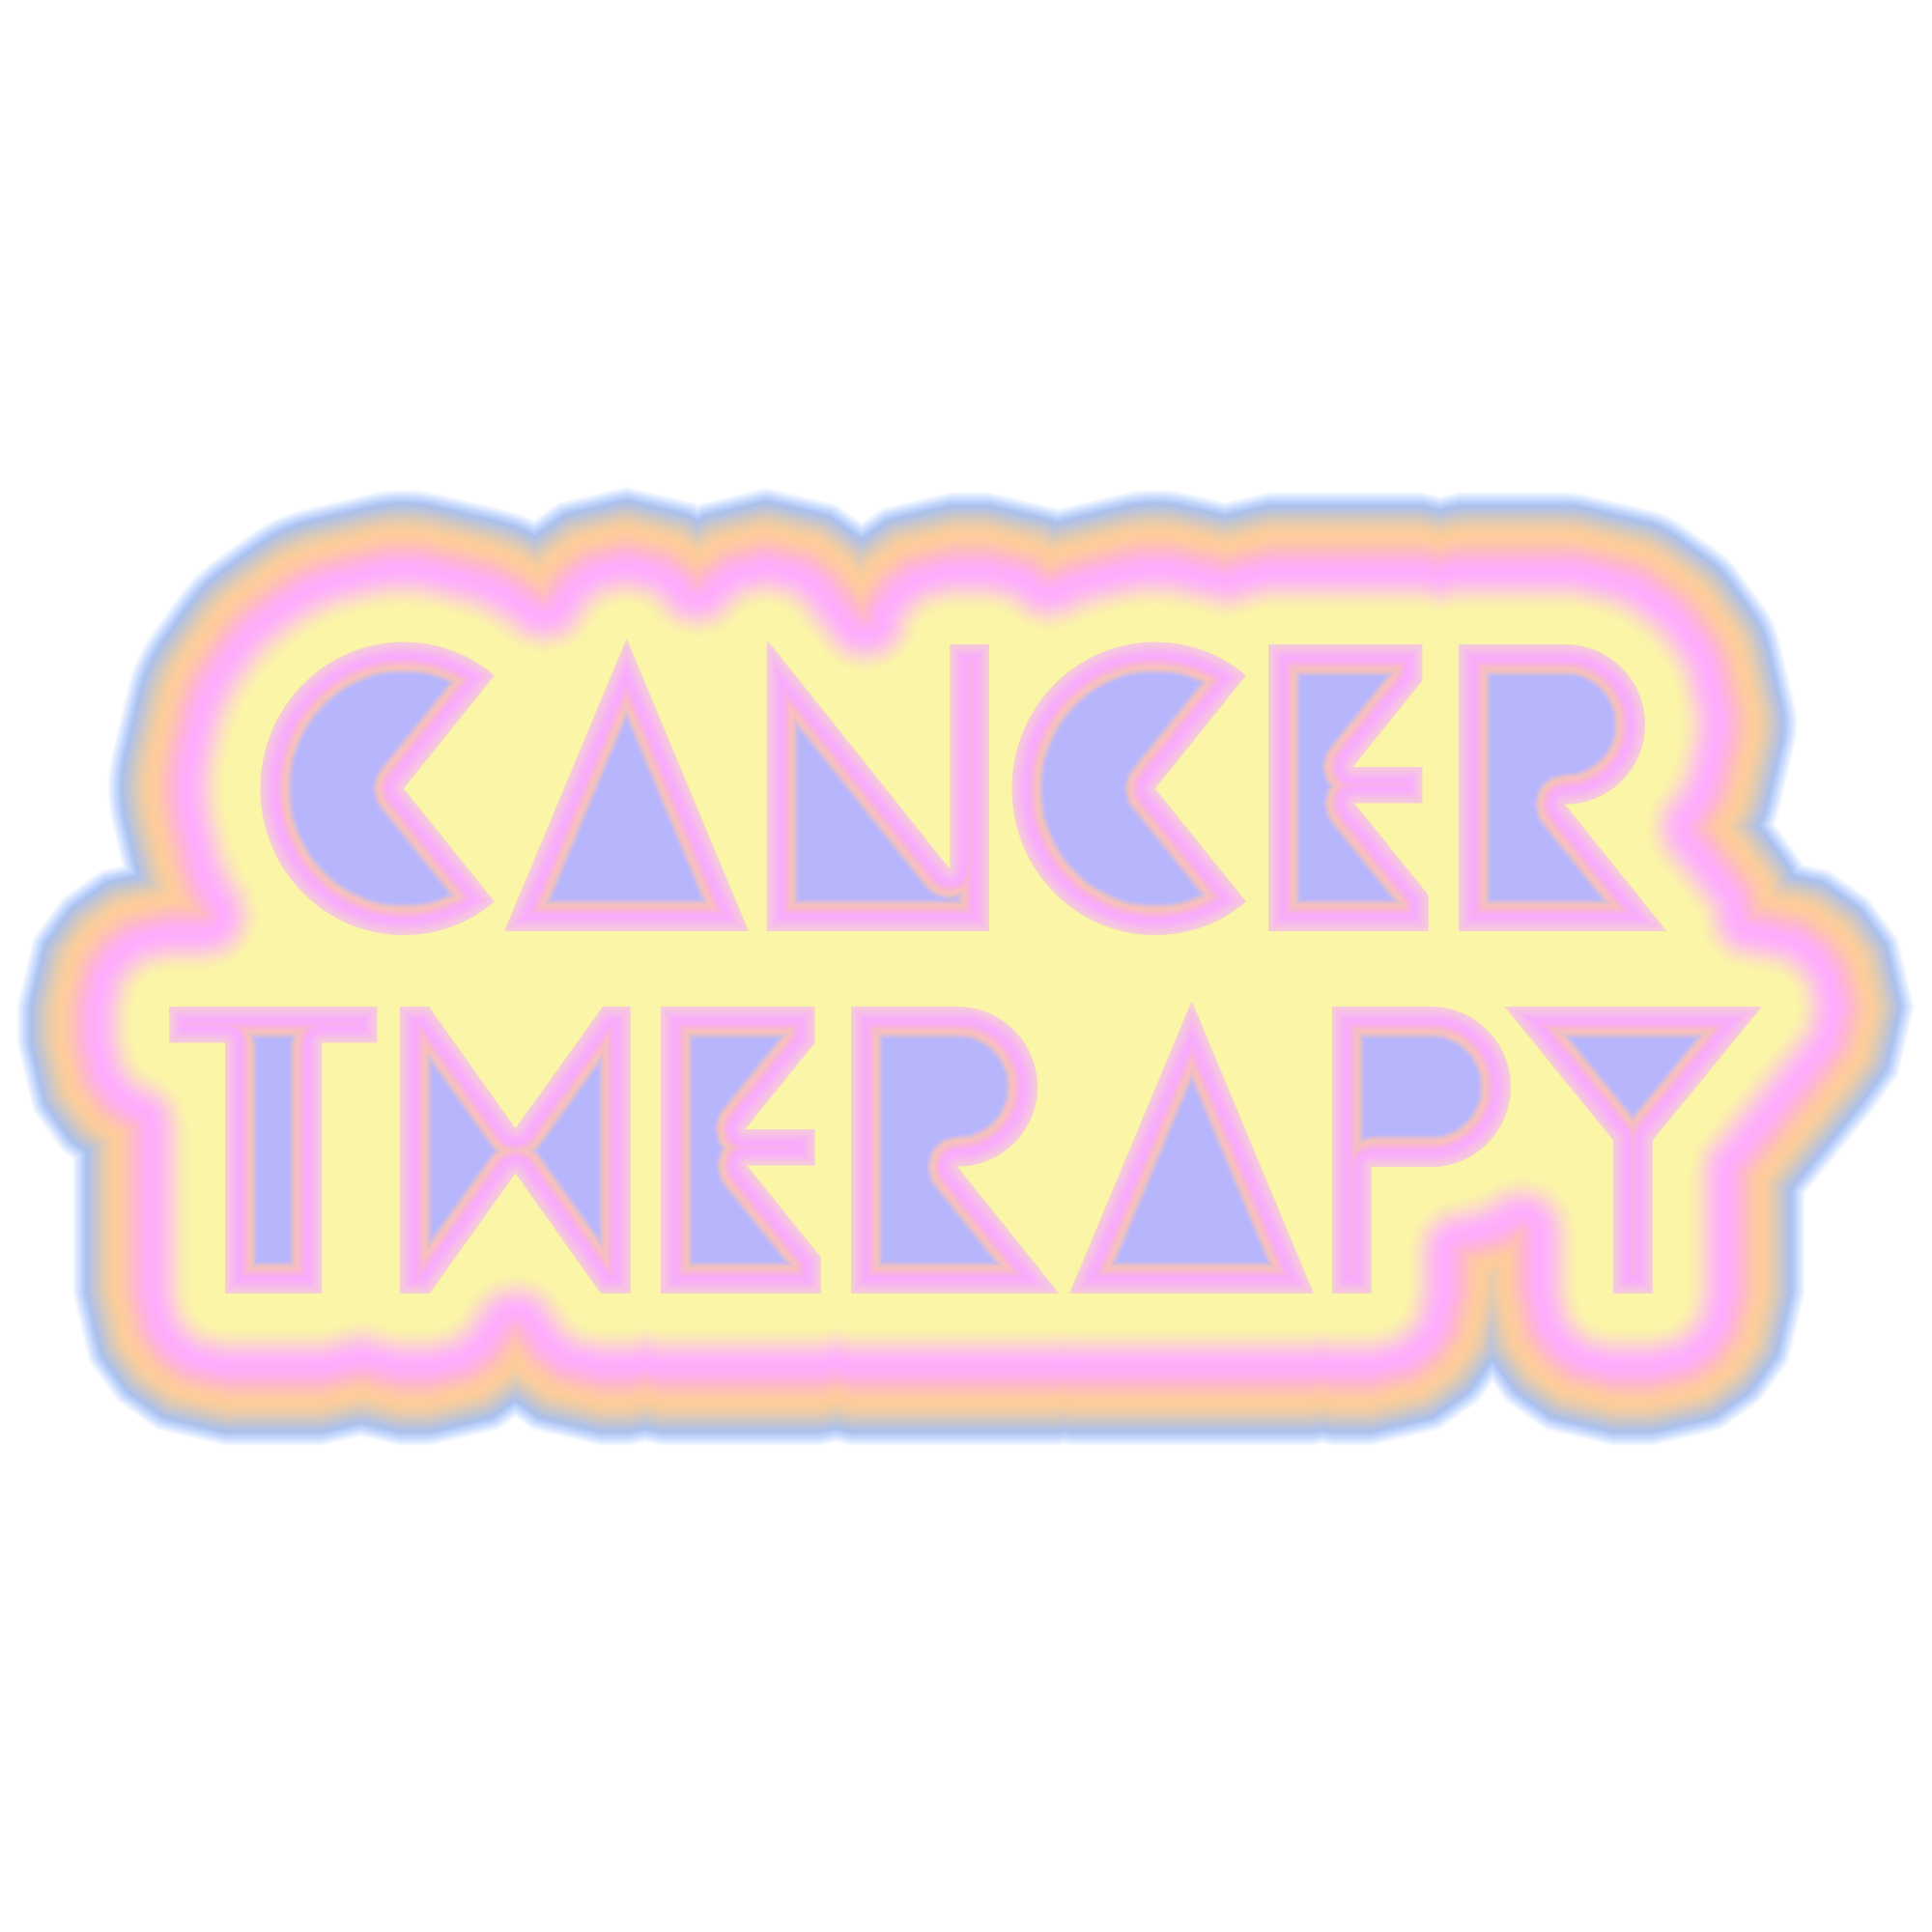 CancerTherapy.png